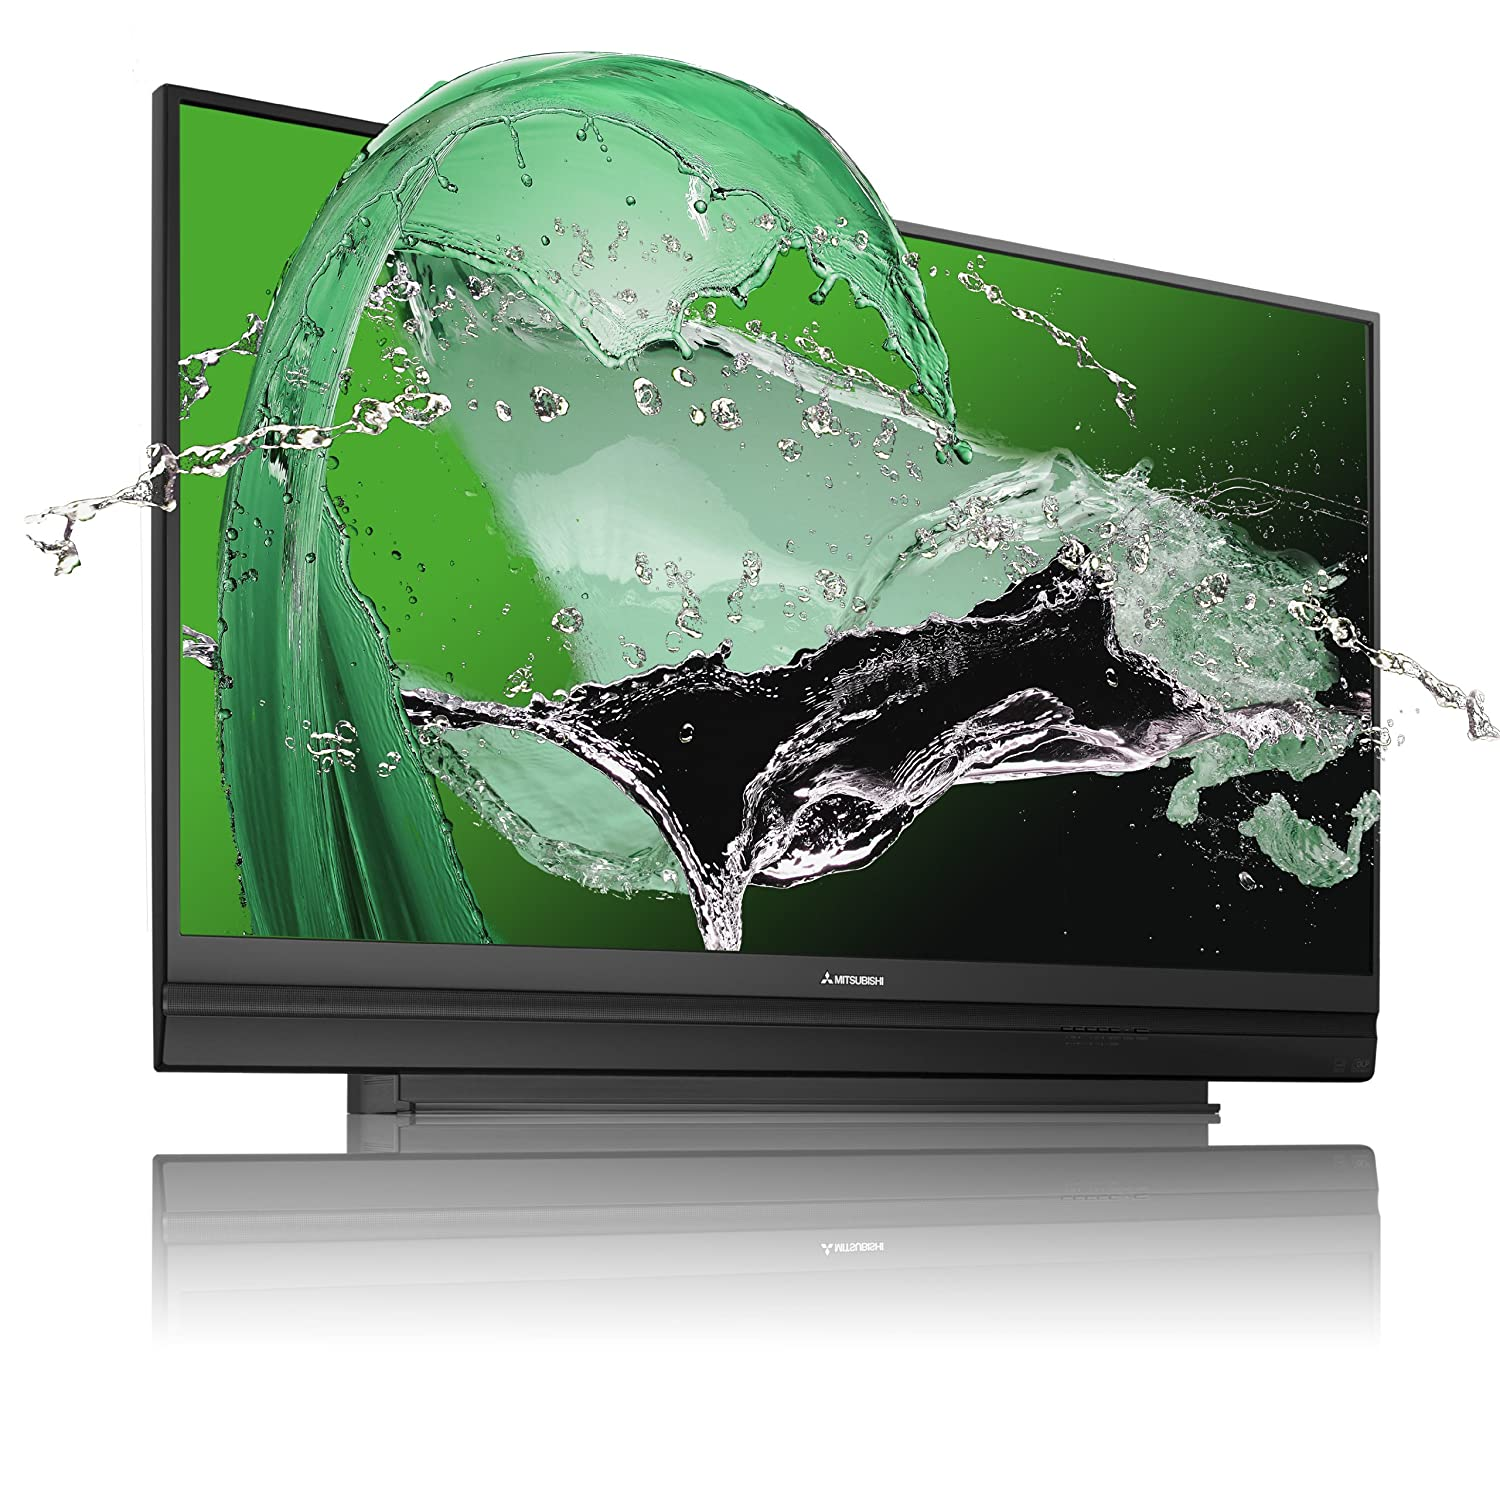 Mitsubishi Tv Tech Support: Mitsubishi Brings 60 Inch 3D TVs For Under $1000